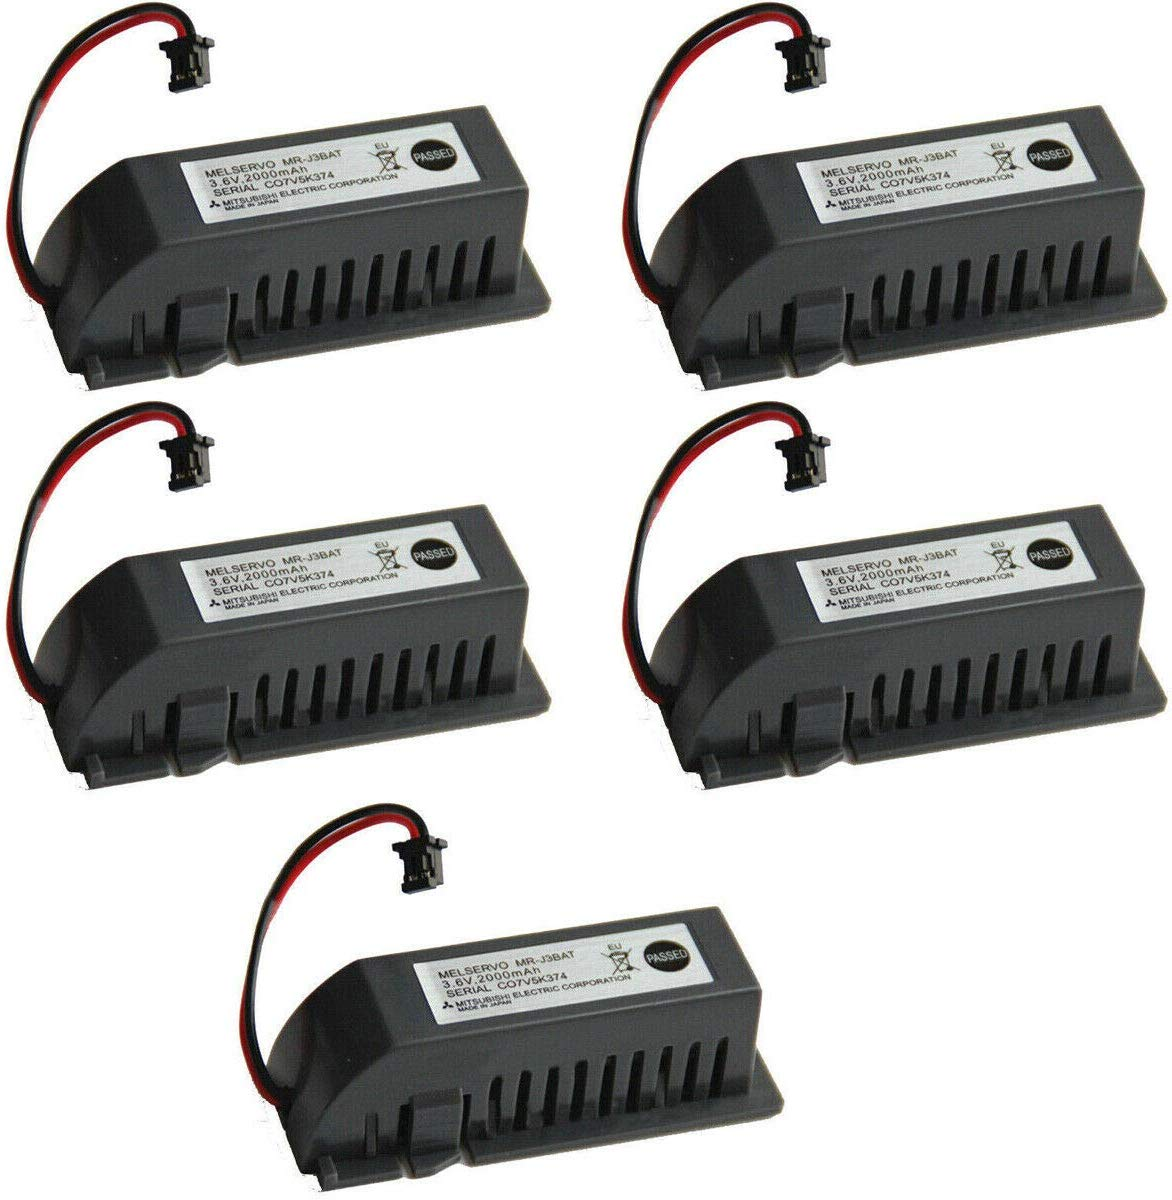 5-Pack 3.6V MR-J3BAT 2000mAh ER6VC119A/B PLC CNC Li-ion Battery for Mitsubishi ER6VC119A/B MELSERVO MR70